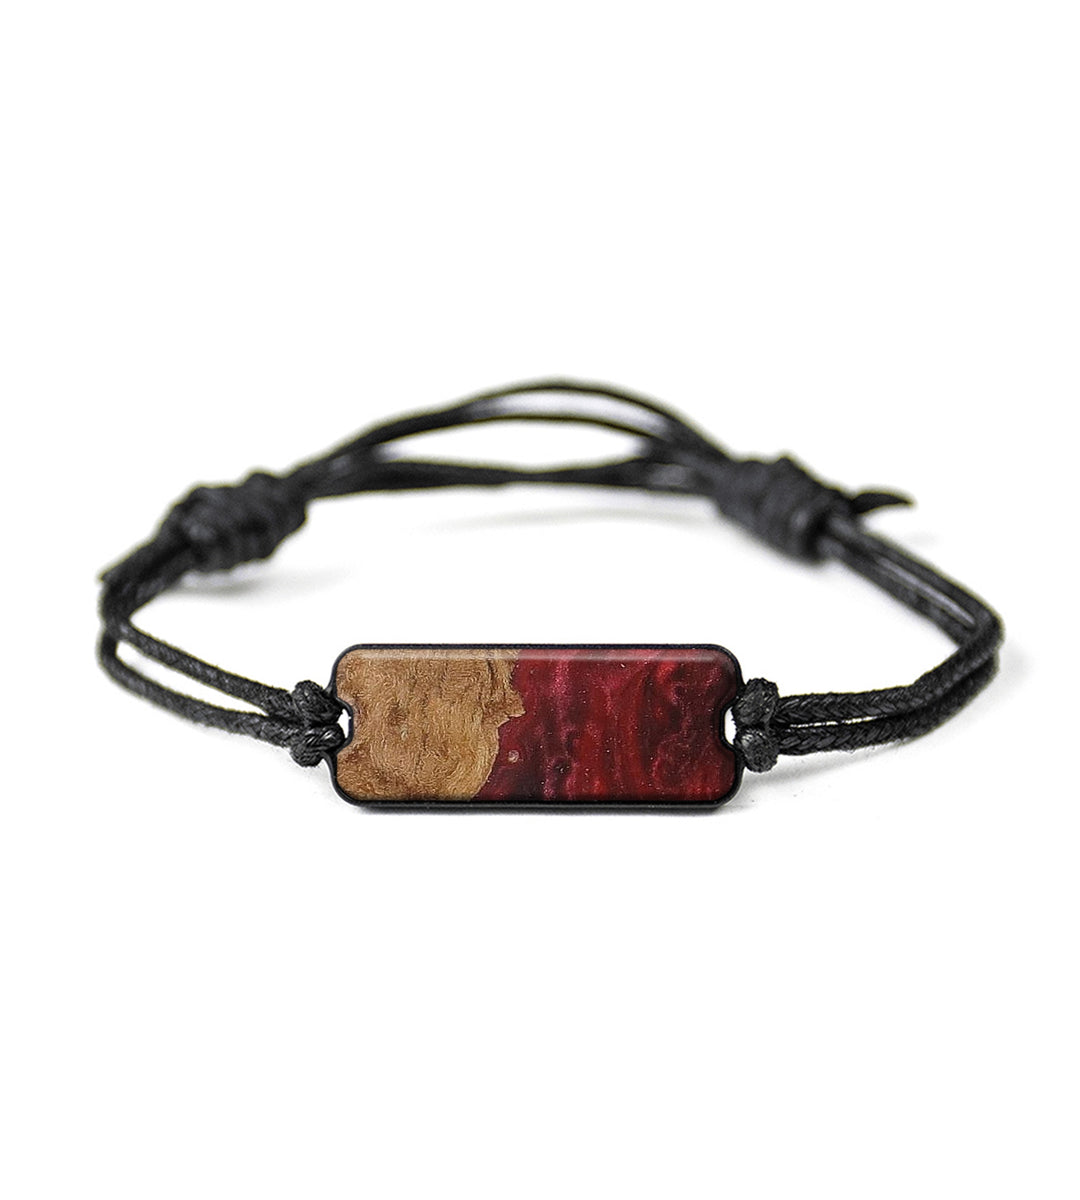 Classic Wood+Resin Bracelet - Renu (Dark Red, 368842)